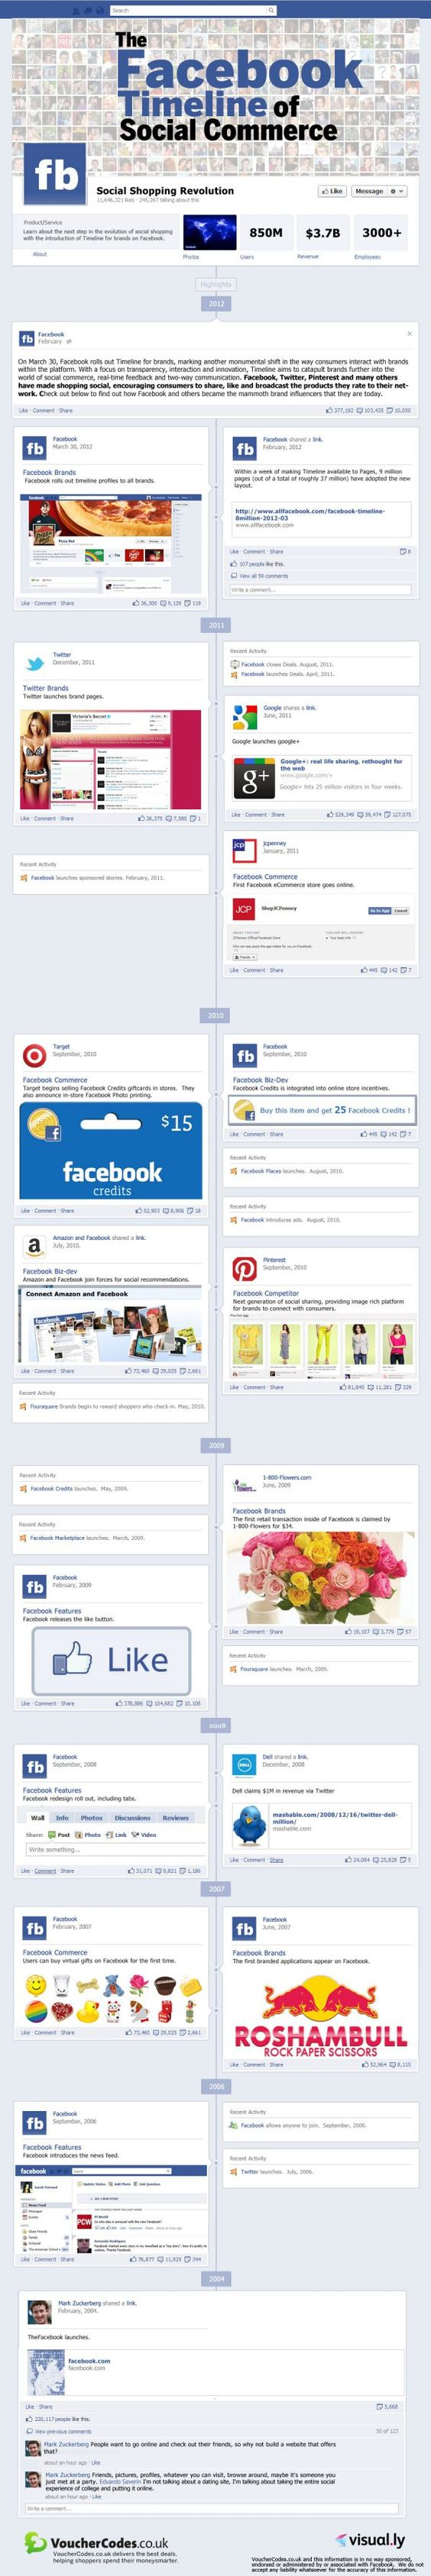 The Facebook Timeline of Social Commerc